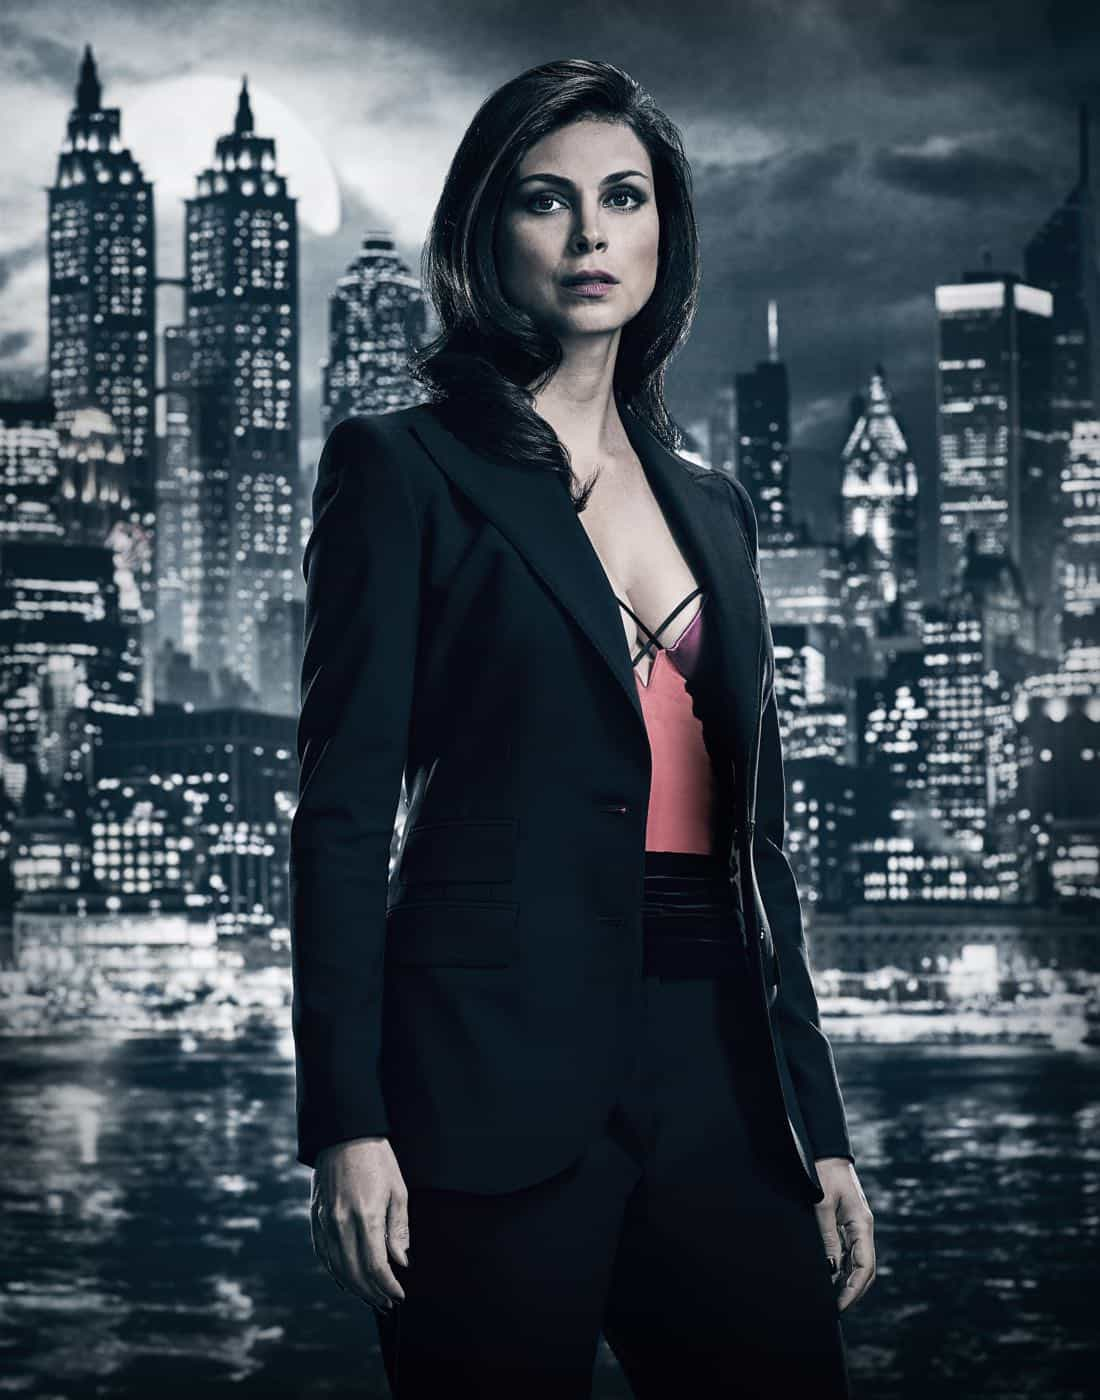 Morena Baccarin. Season 4 of GOTHAM